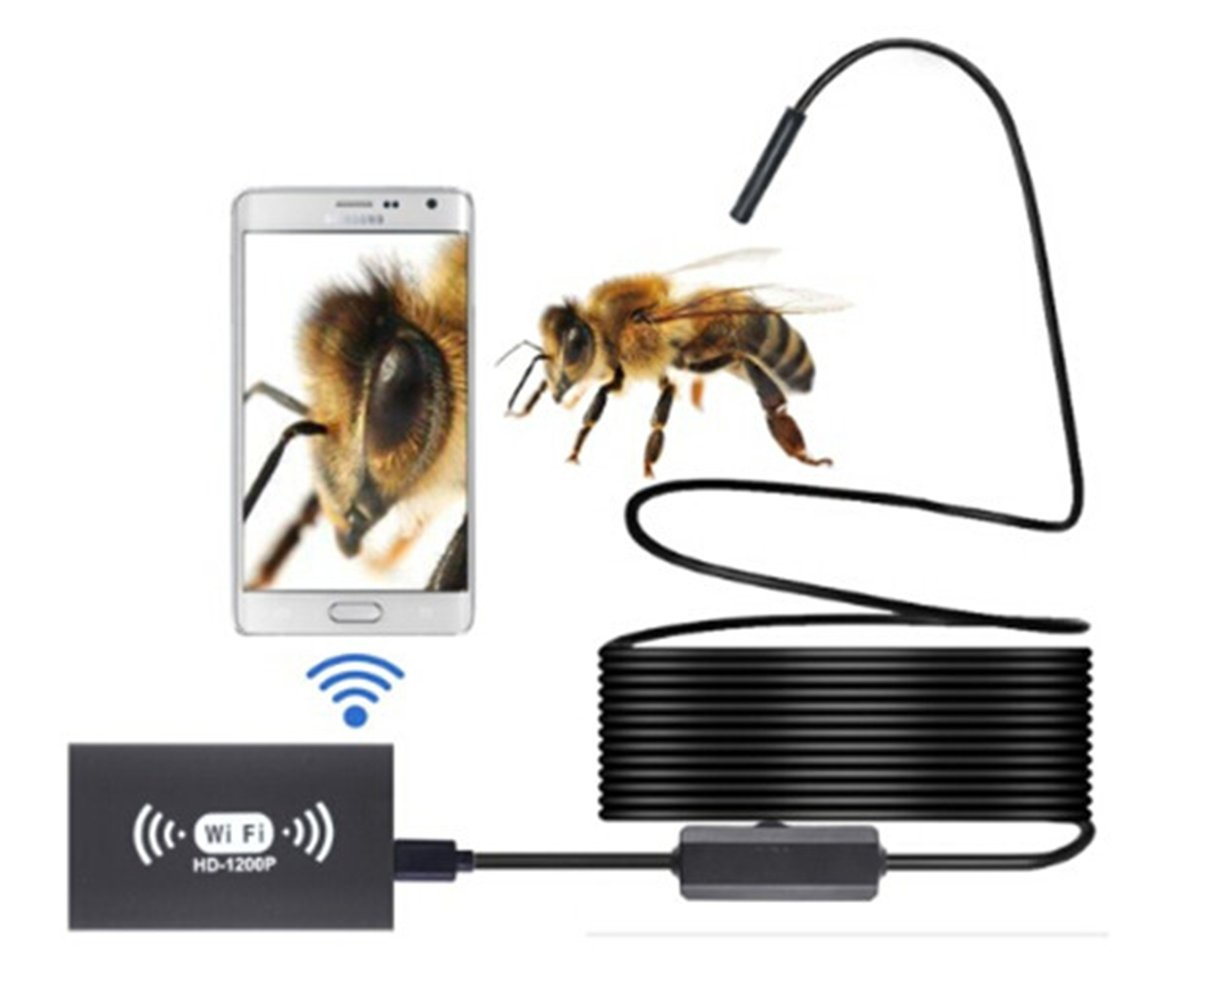 WiFi USB Endoscope HD 1200P Wifi Camera 8mm Waterproof Antscope Snake Pipe Tube Camera for Android iOS (Black, 3.28 feet)